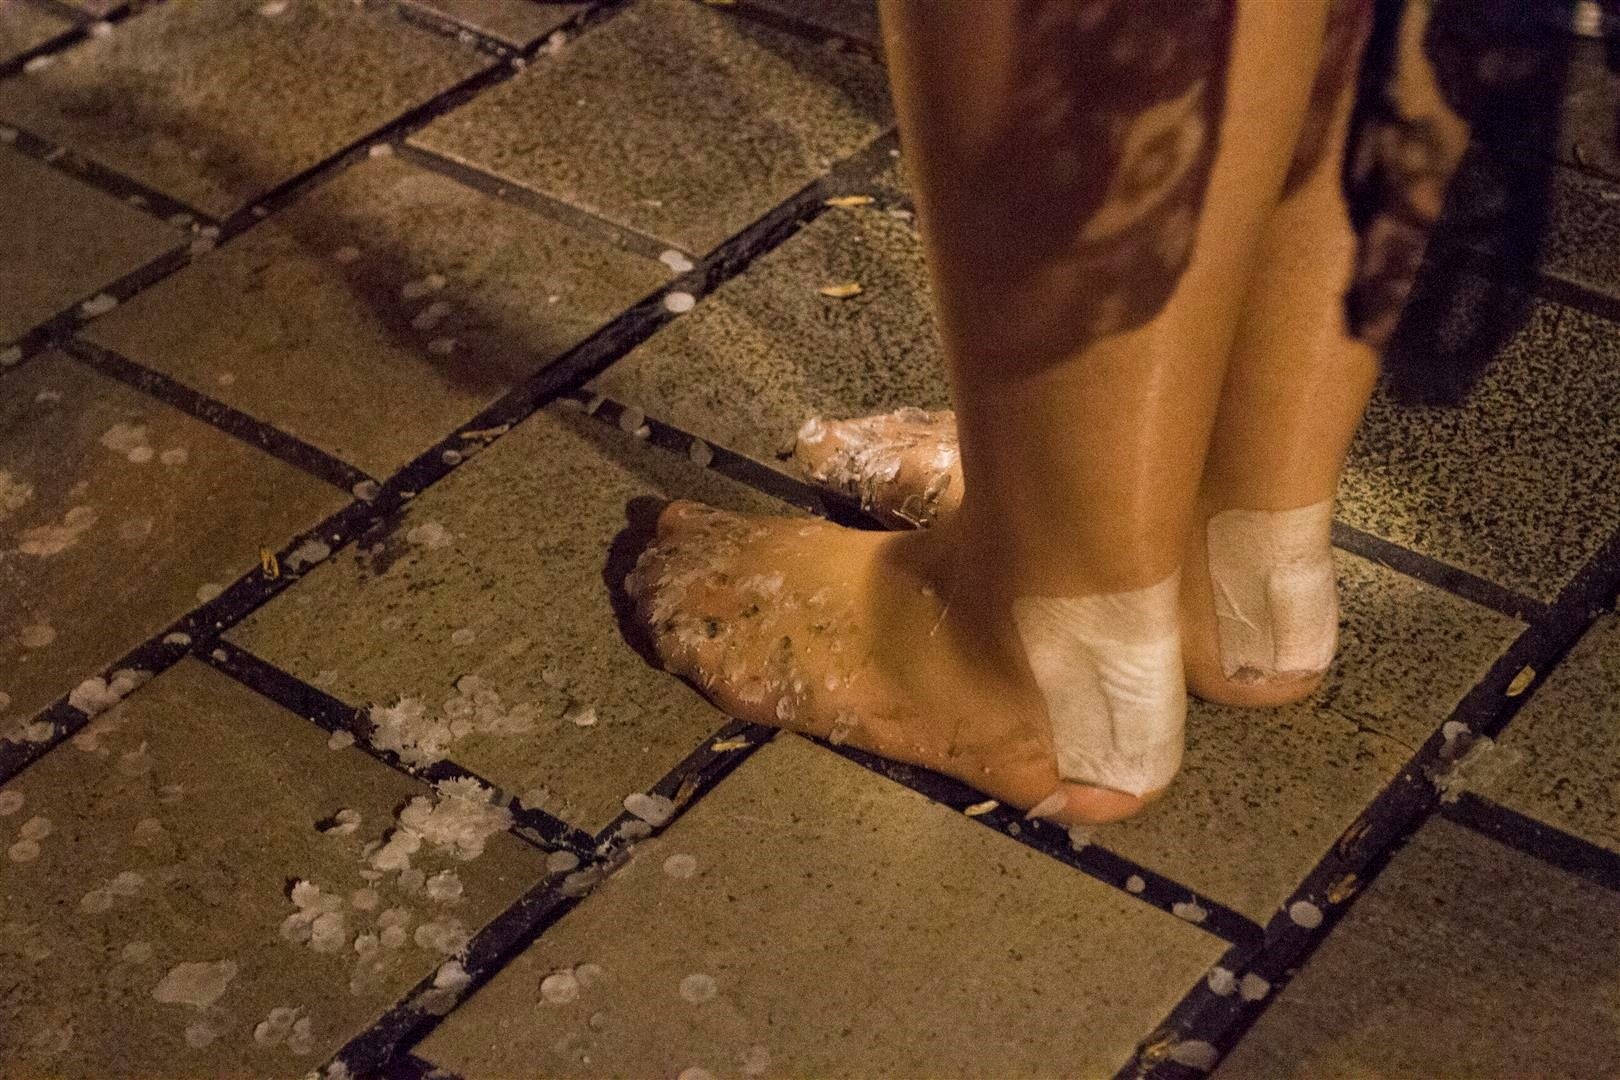 A Mantilla is walking barefoot on the streets of Granada,